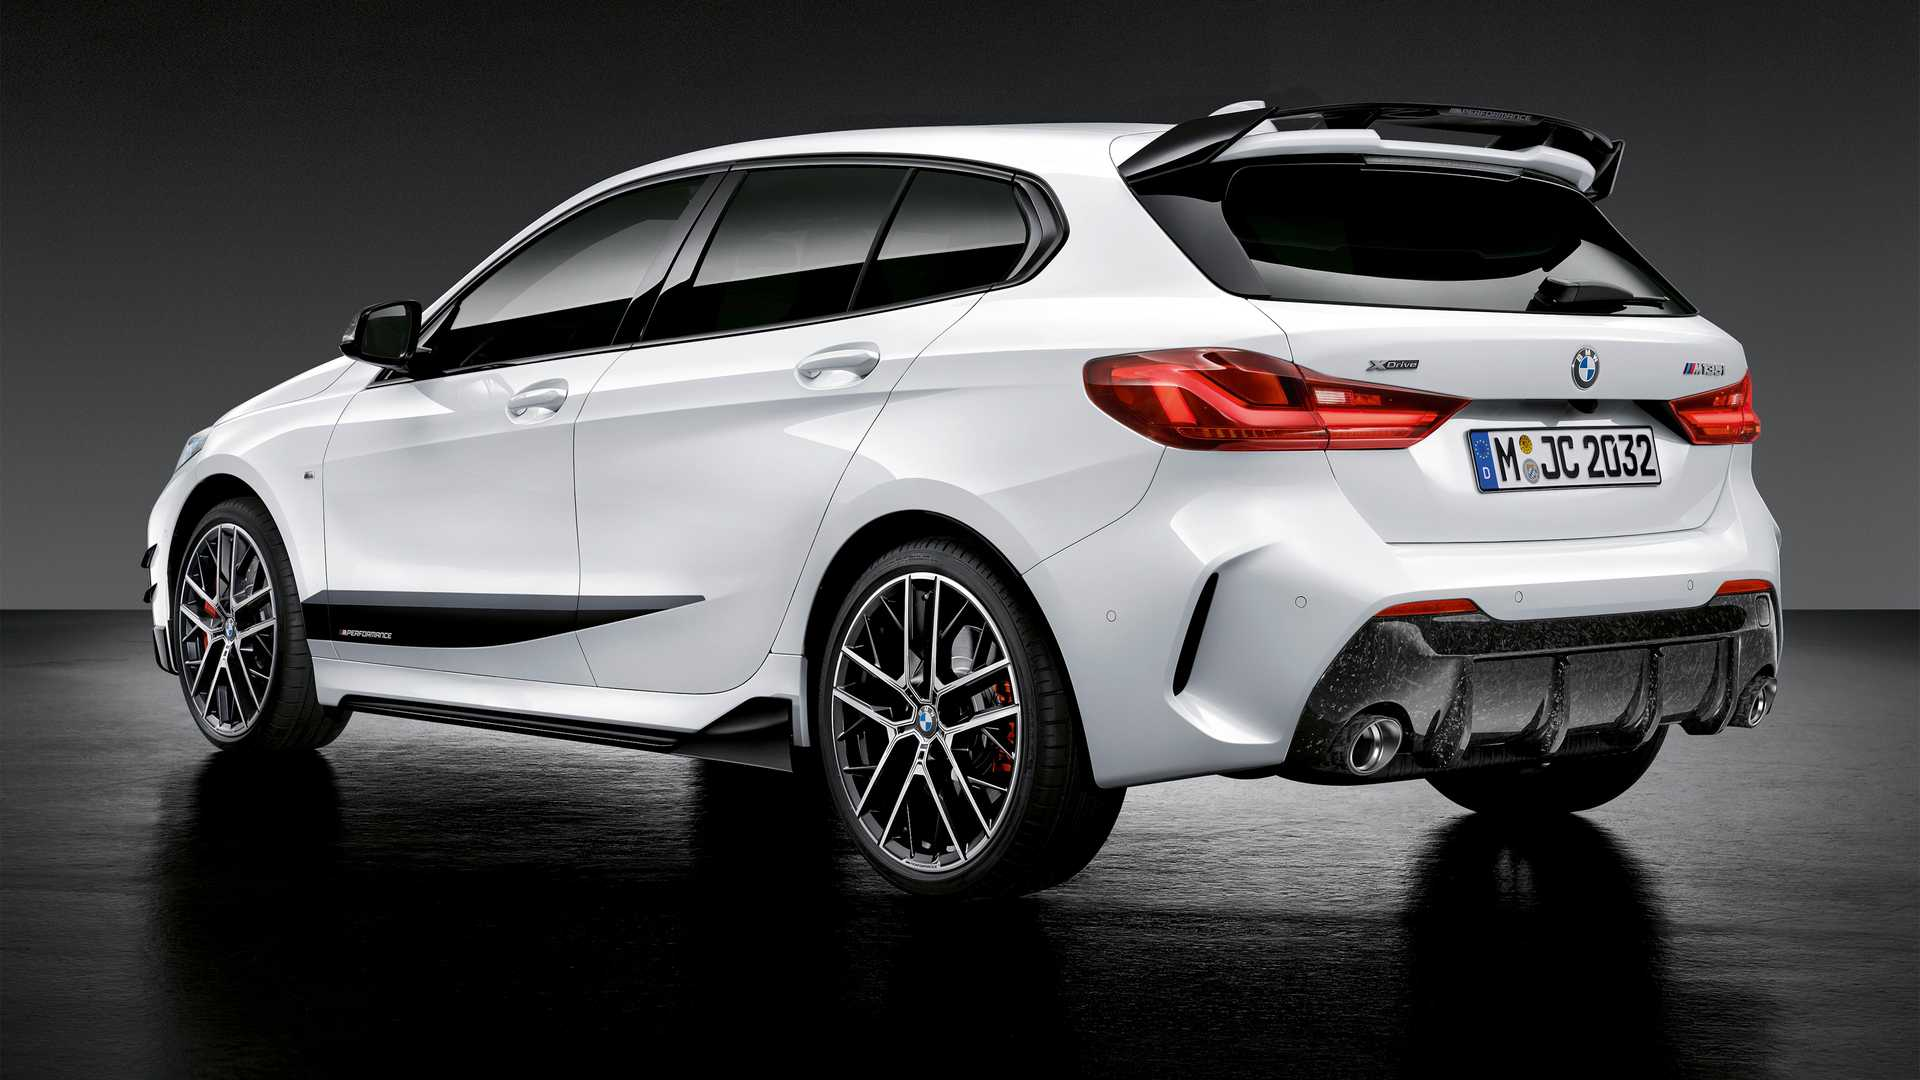 Bmw M Series >> 2020 Bmw M135i Xdrive Gets Sporty Look With M Performance Parts